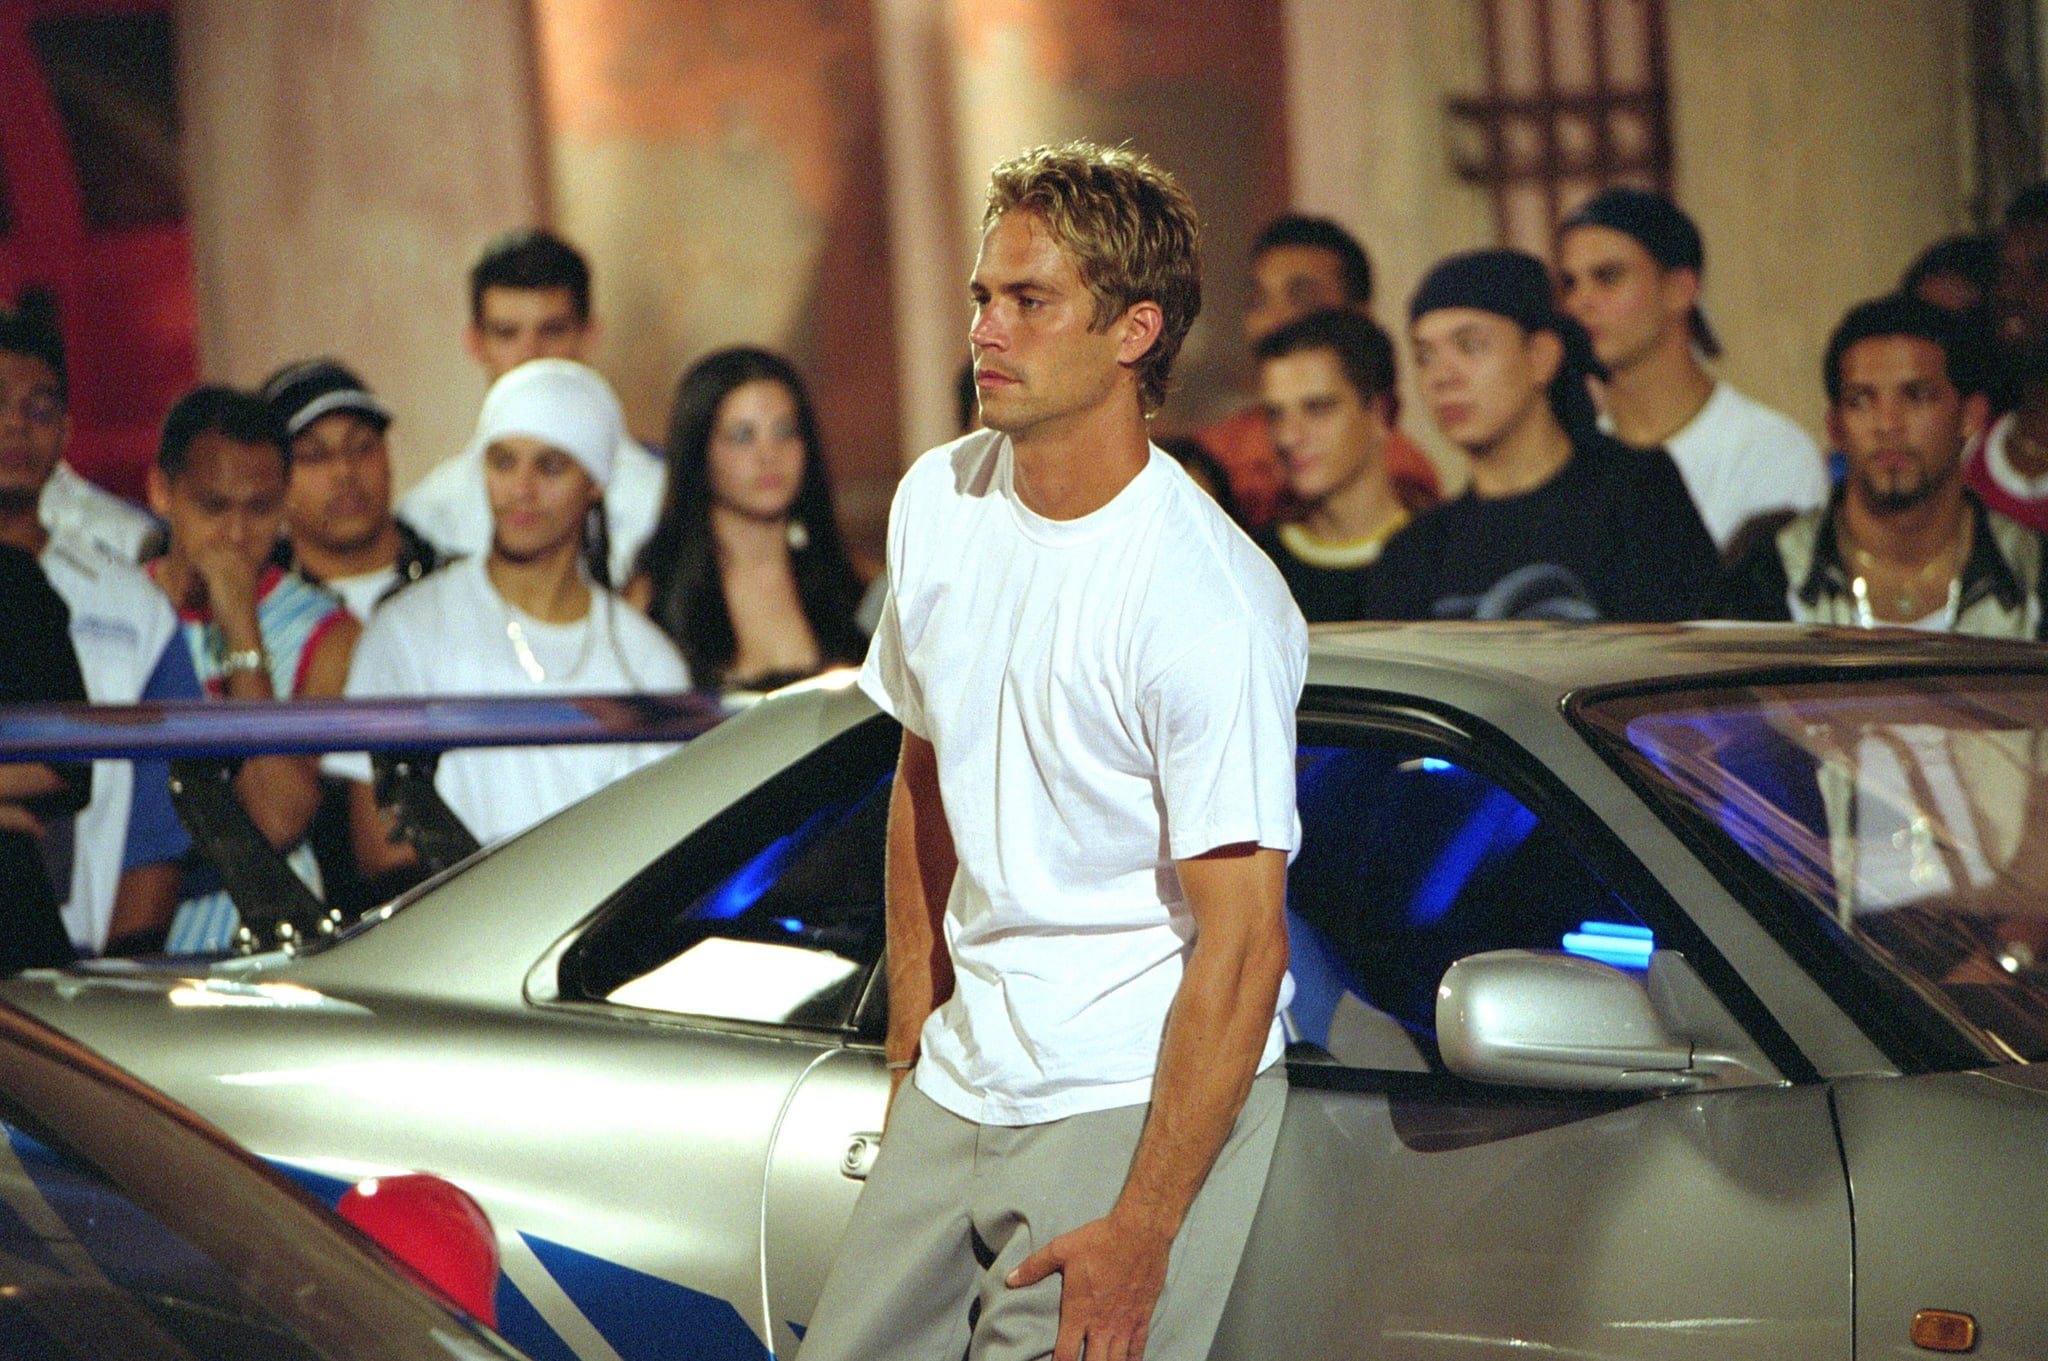 2 Fast 2 Furious 2003 The Fast And The Furious Nostalgia Go Back To The Beginning With These Pictures Popsugar Entertainment Photo 35